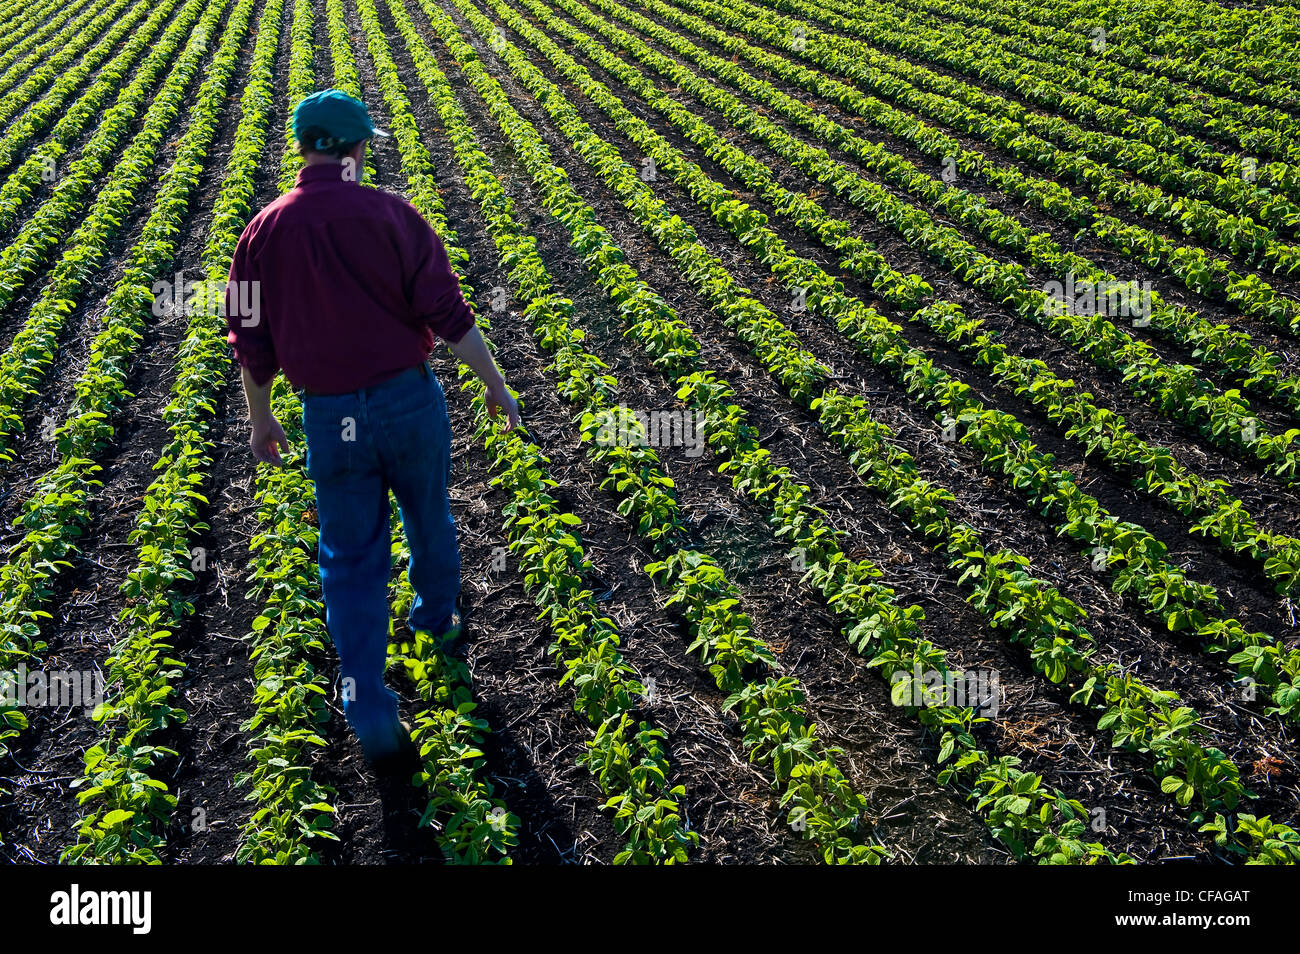 a farmer scouts his early growth soybean field near Lorette, Manitoba, Canada - Stock Image